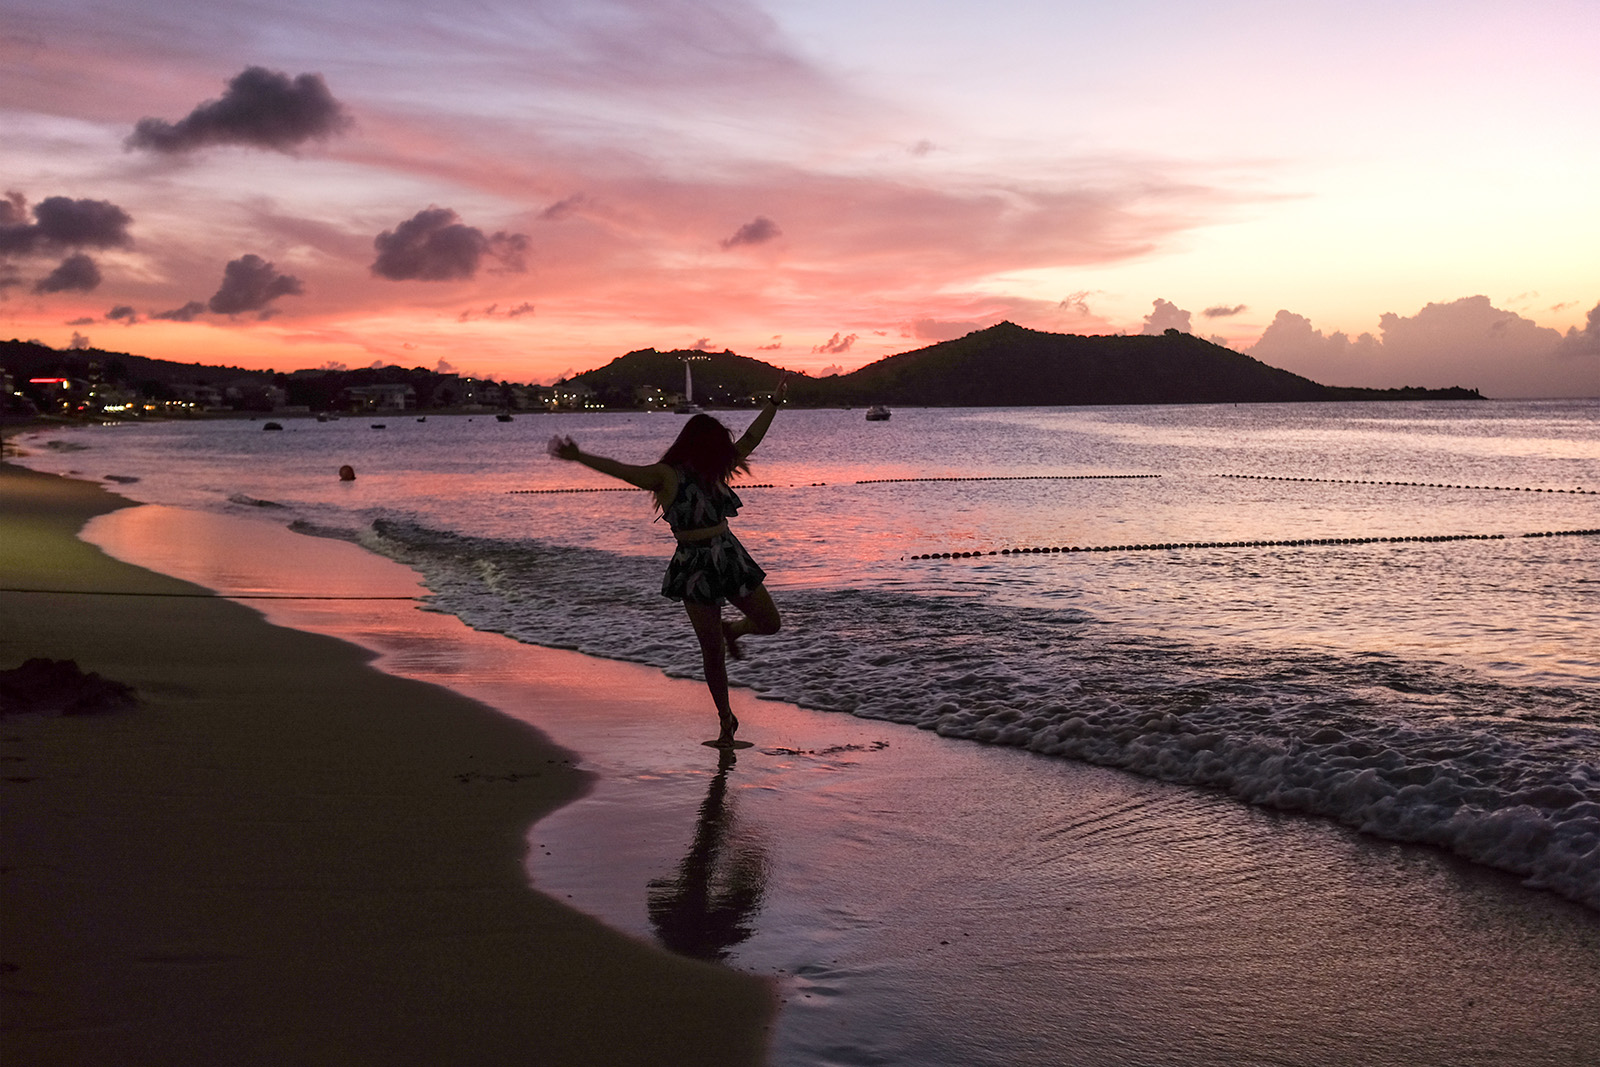 Sunset at Grand Case, St. Martin